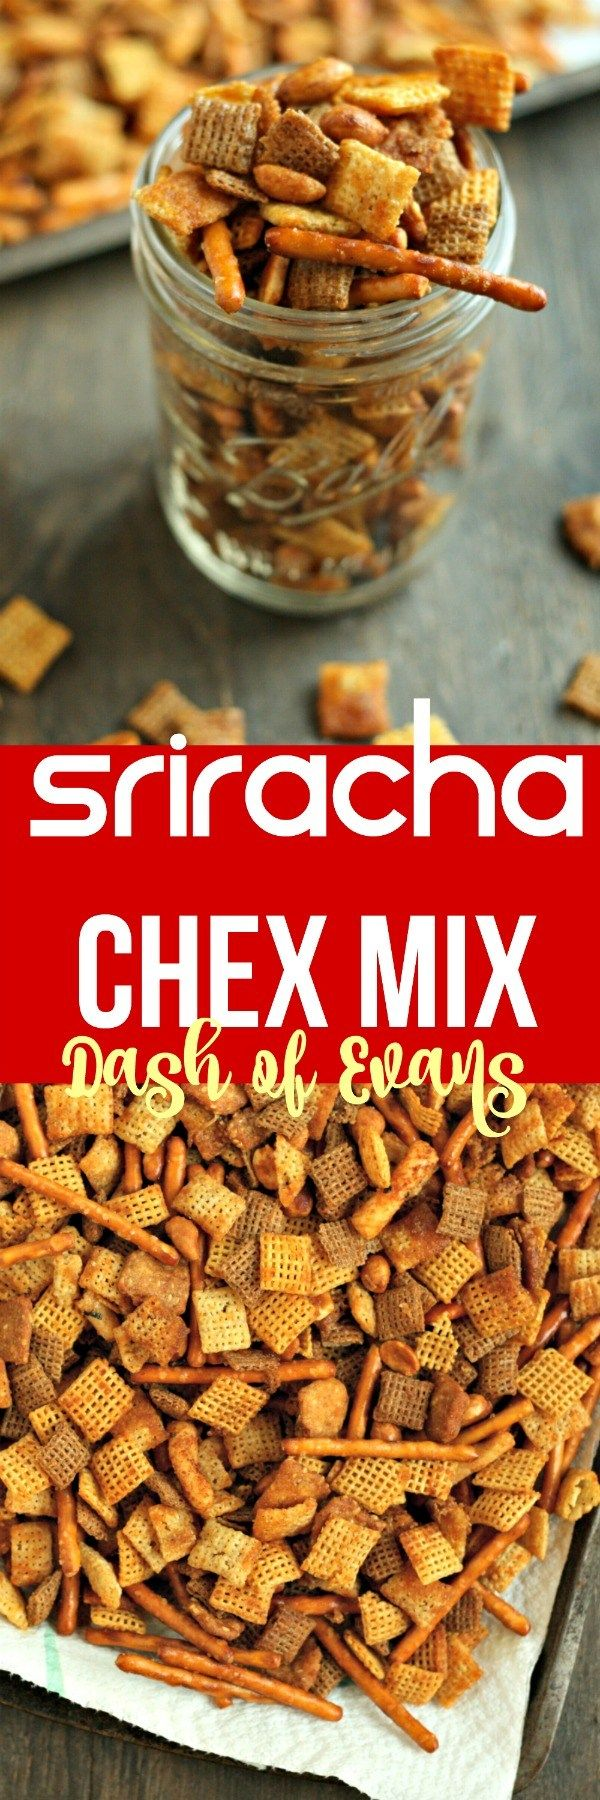 Perfect road trip snack sriracha chex mix crunchy savory and so food forumfinder Image collections